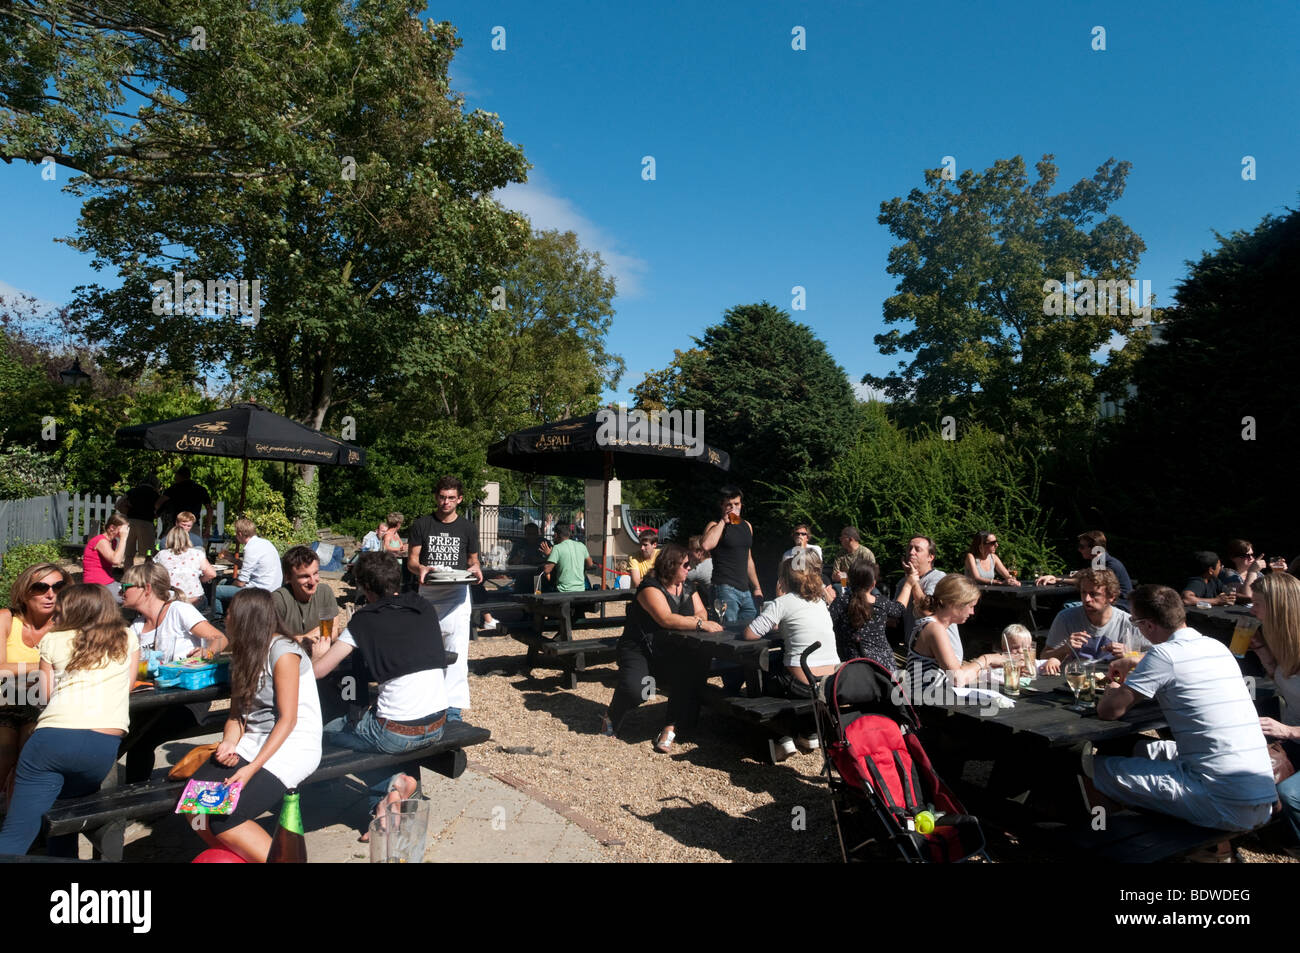 Beer garden of the Freemasons Arms pub in Hampstead, London, England, UK - Stock Image